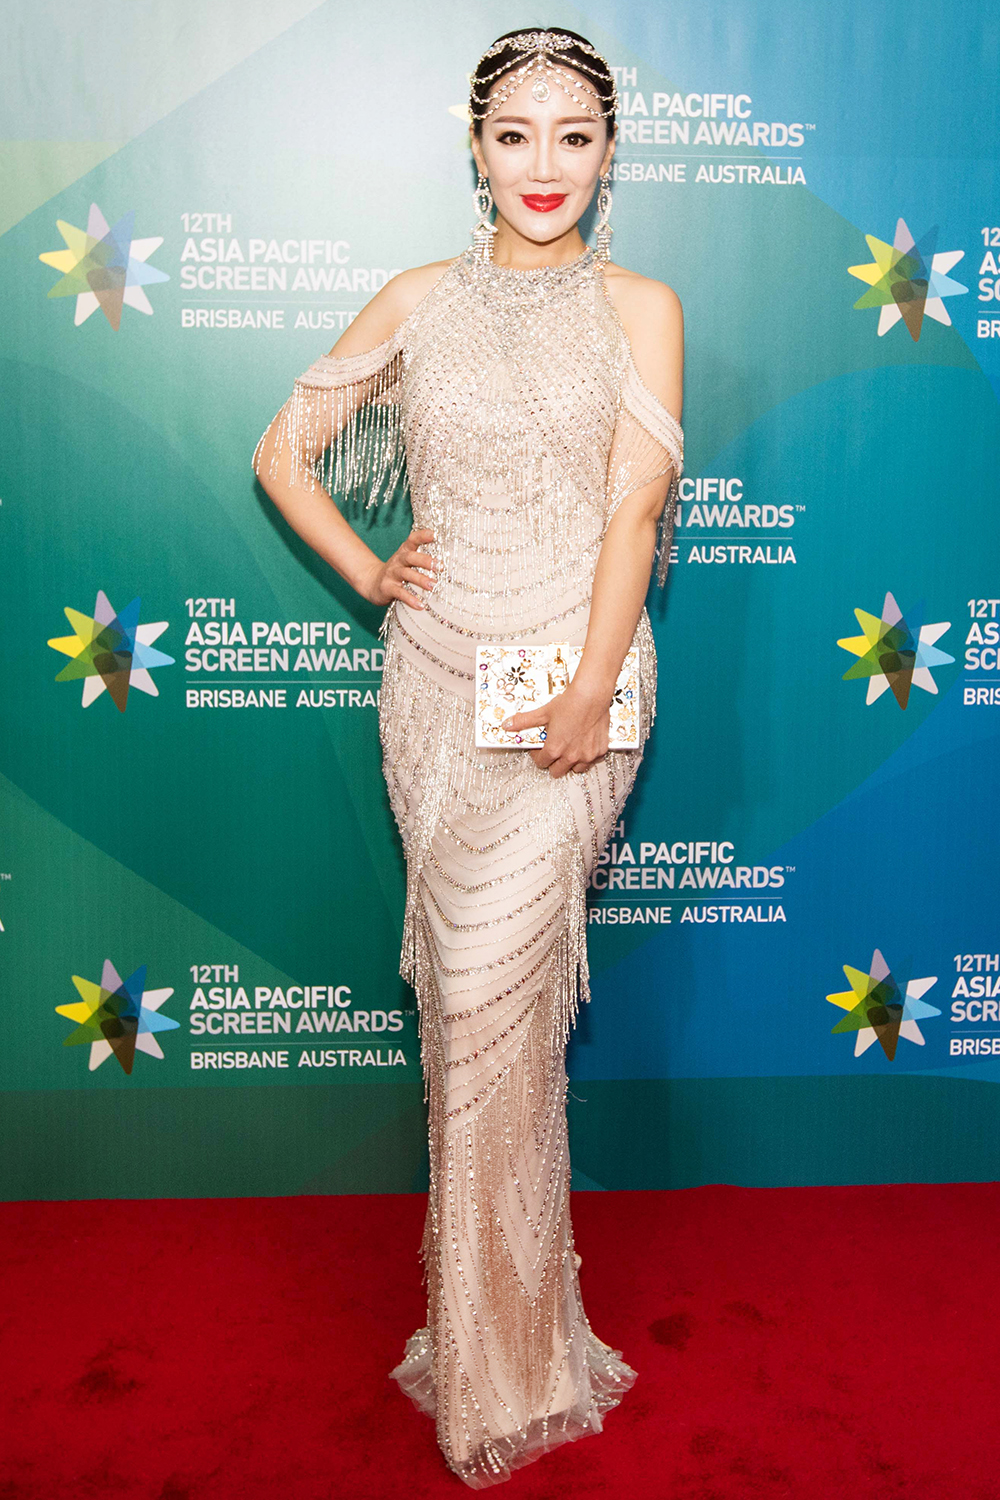 Gorgeous Woman wearing a Tassel and beaded Long Evening Dress at the APSA in Brisbane